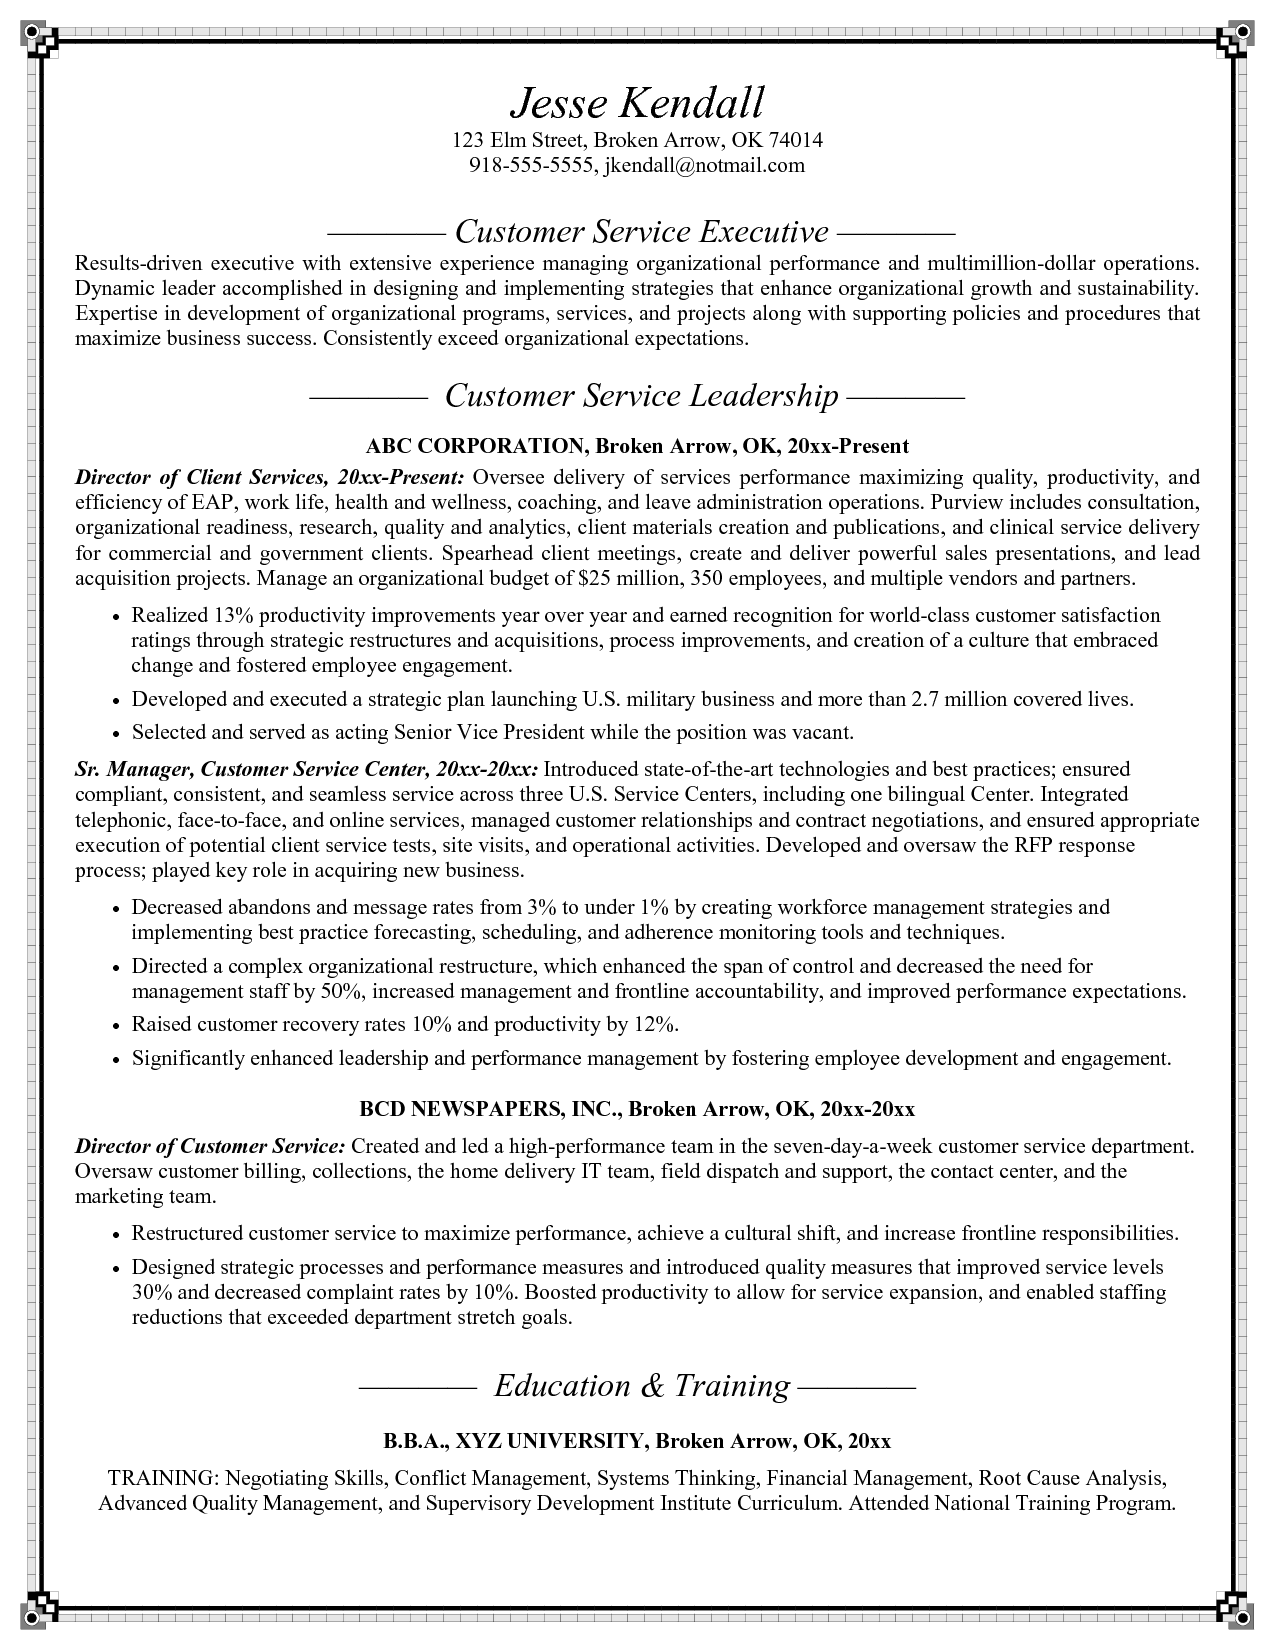 Resume Customer Service Skills Stunning Customer Service Resume Examples Skills Call Center Resume Inspiration Design